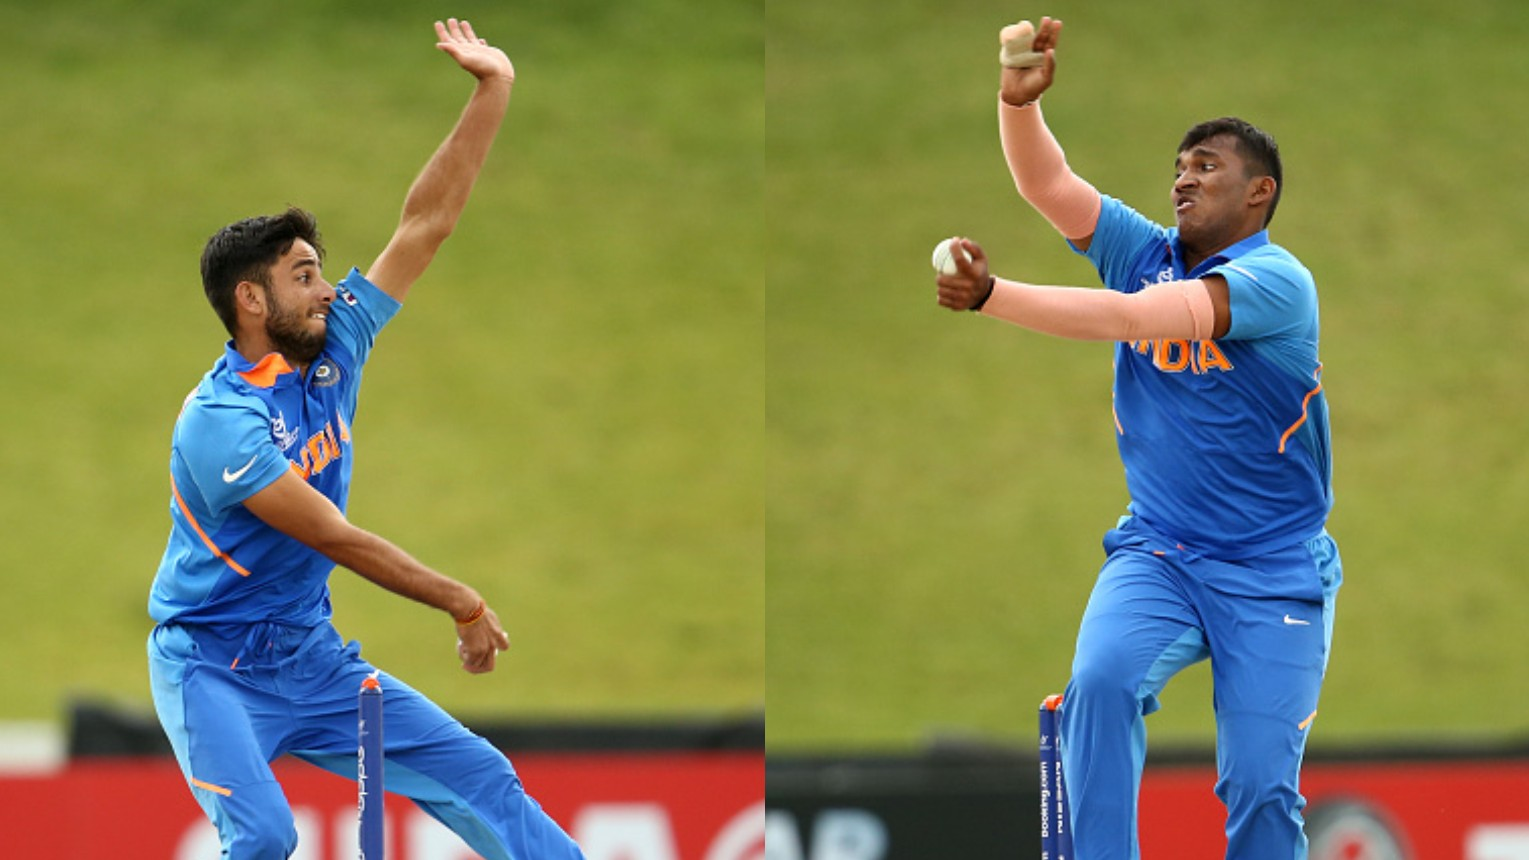 U19CWC 2020: India beats New Zealand to top Group A; Bishnoi picks 4, Ankolekar picks 3 wickets